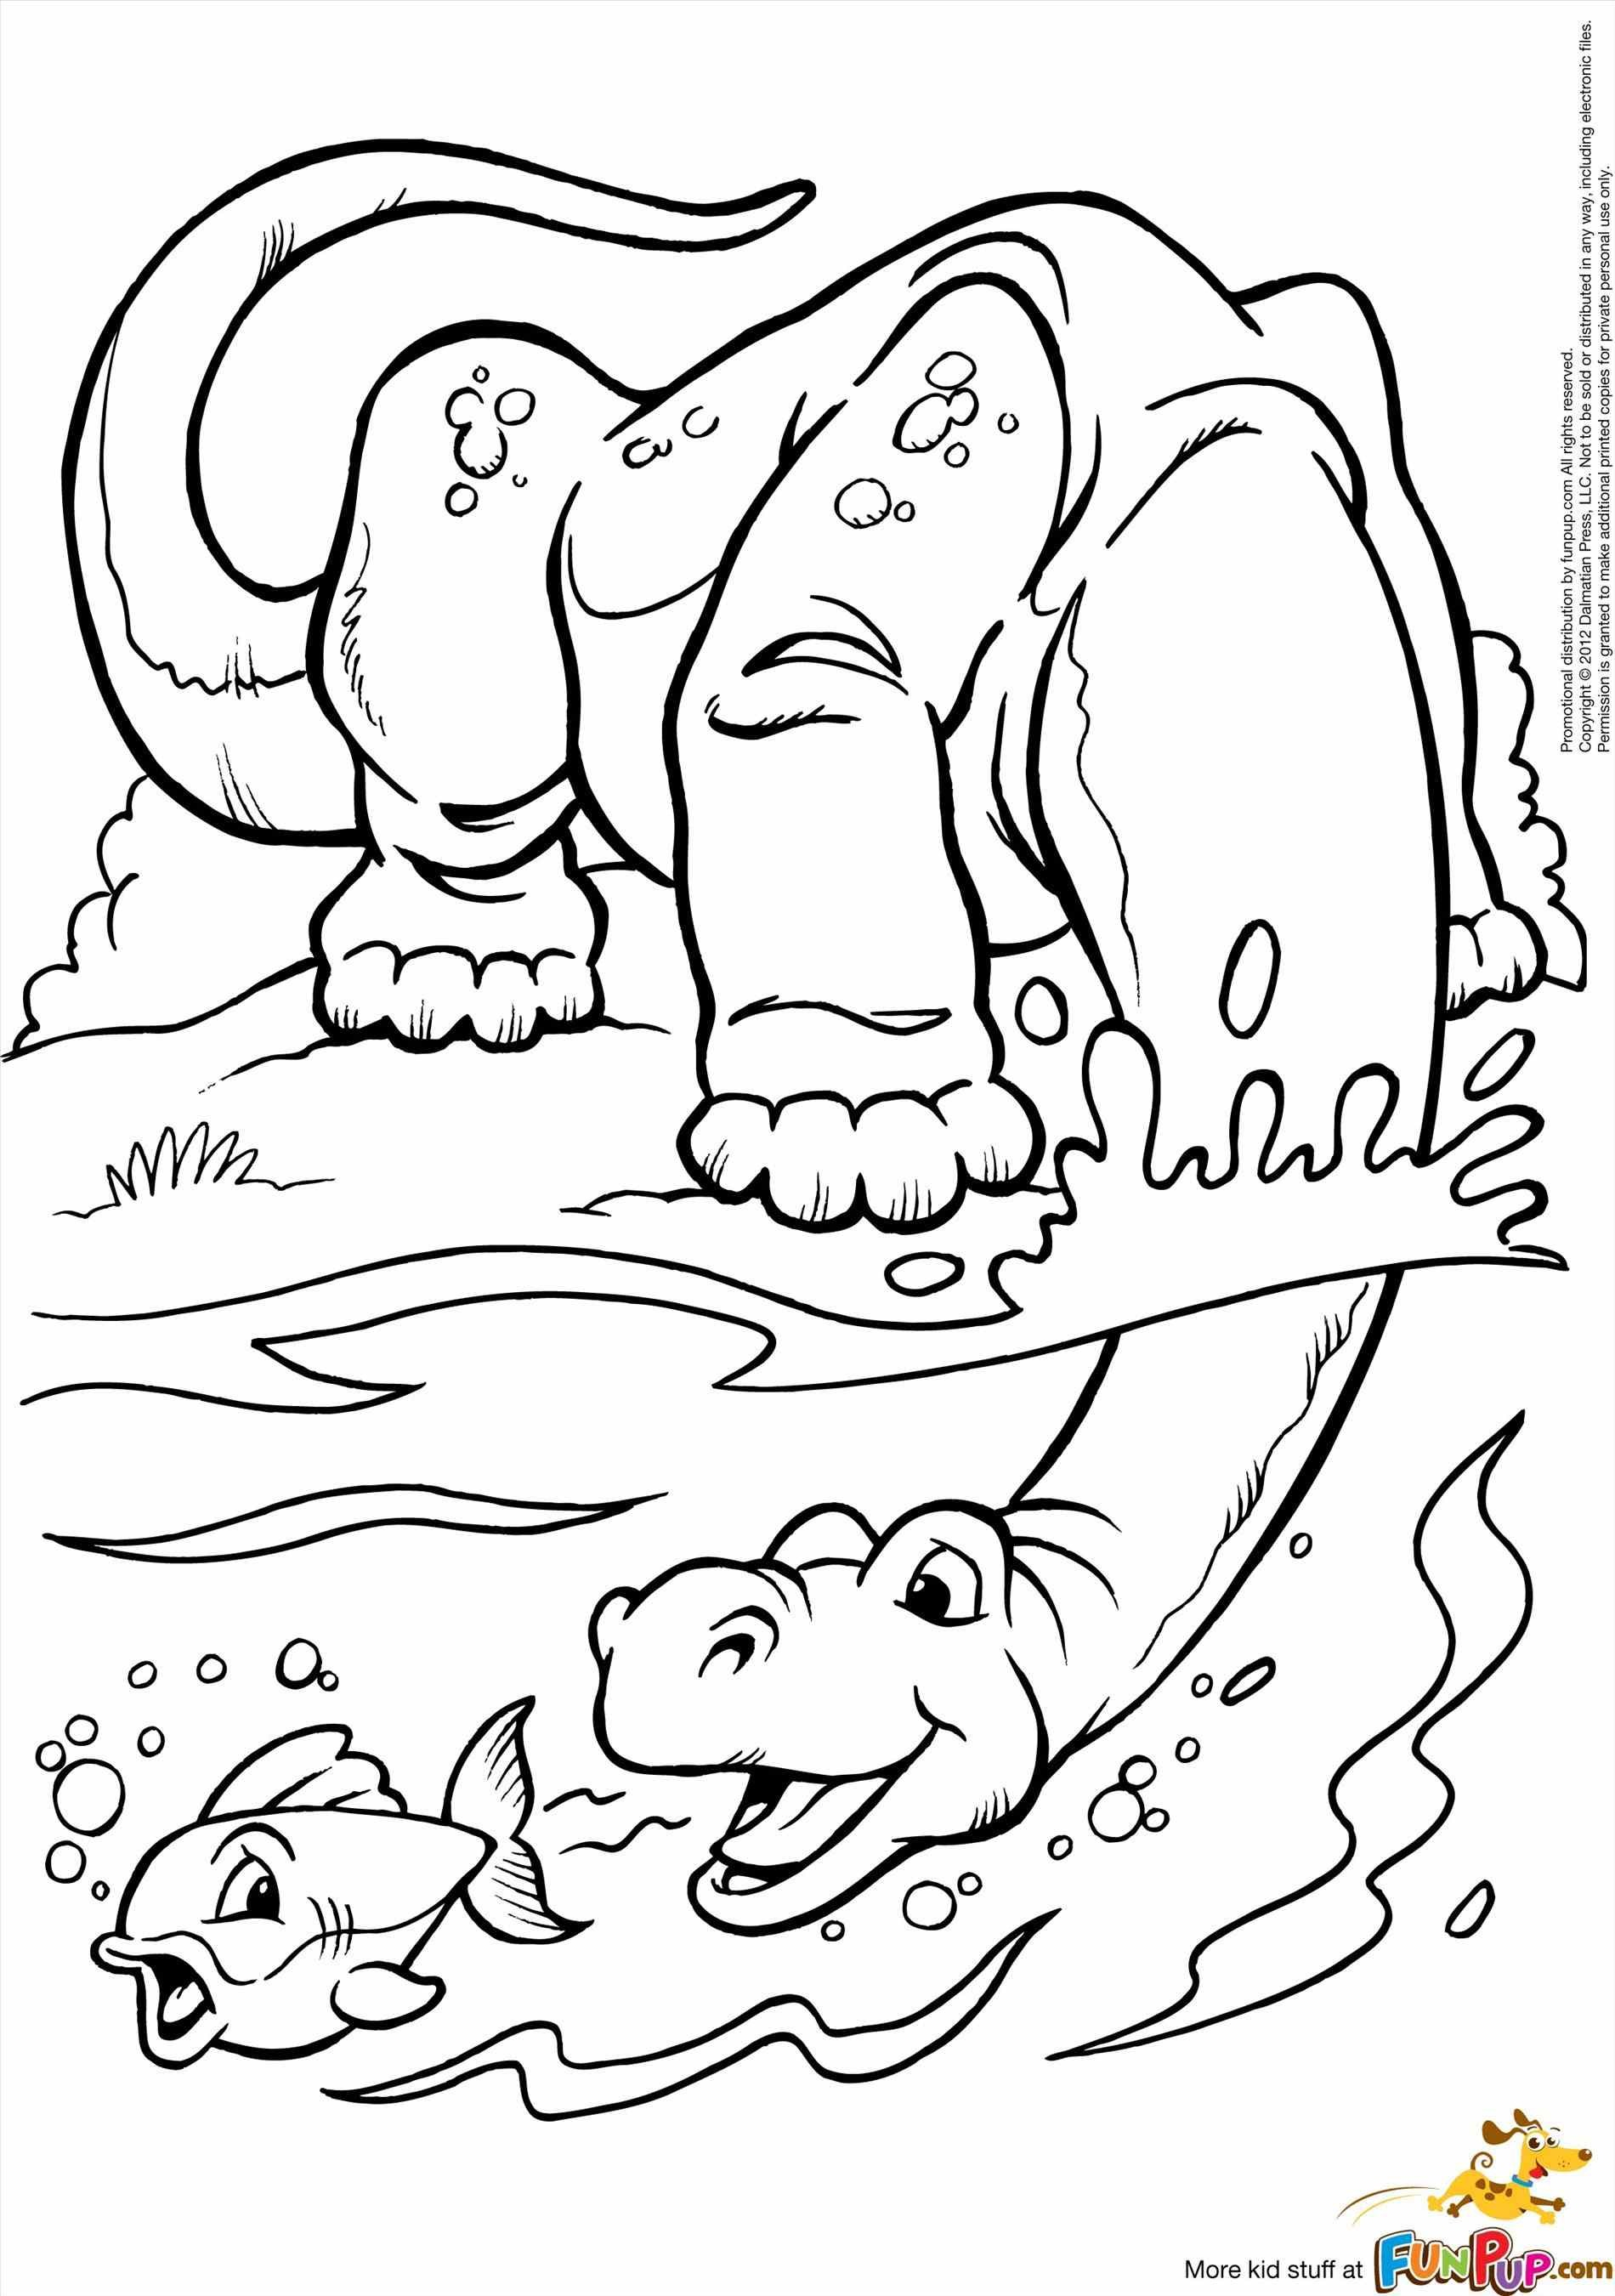 1900x2701 Pebbles Had Washed Coloring Pages For Kids Awesome Meat Group